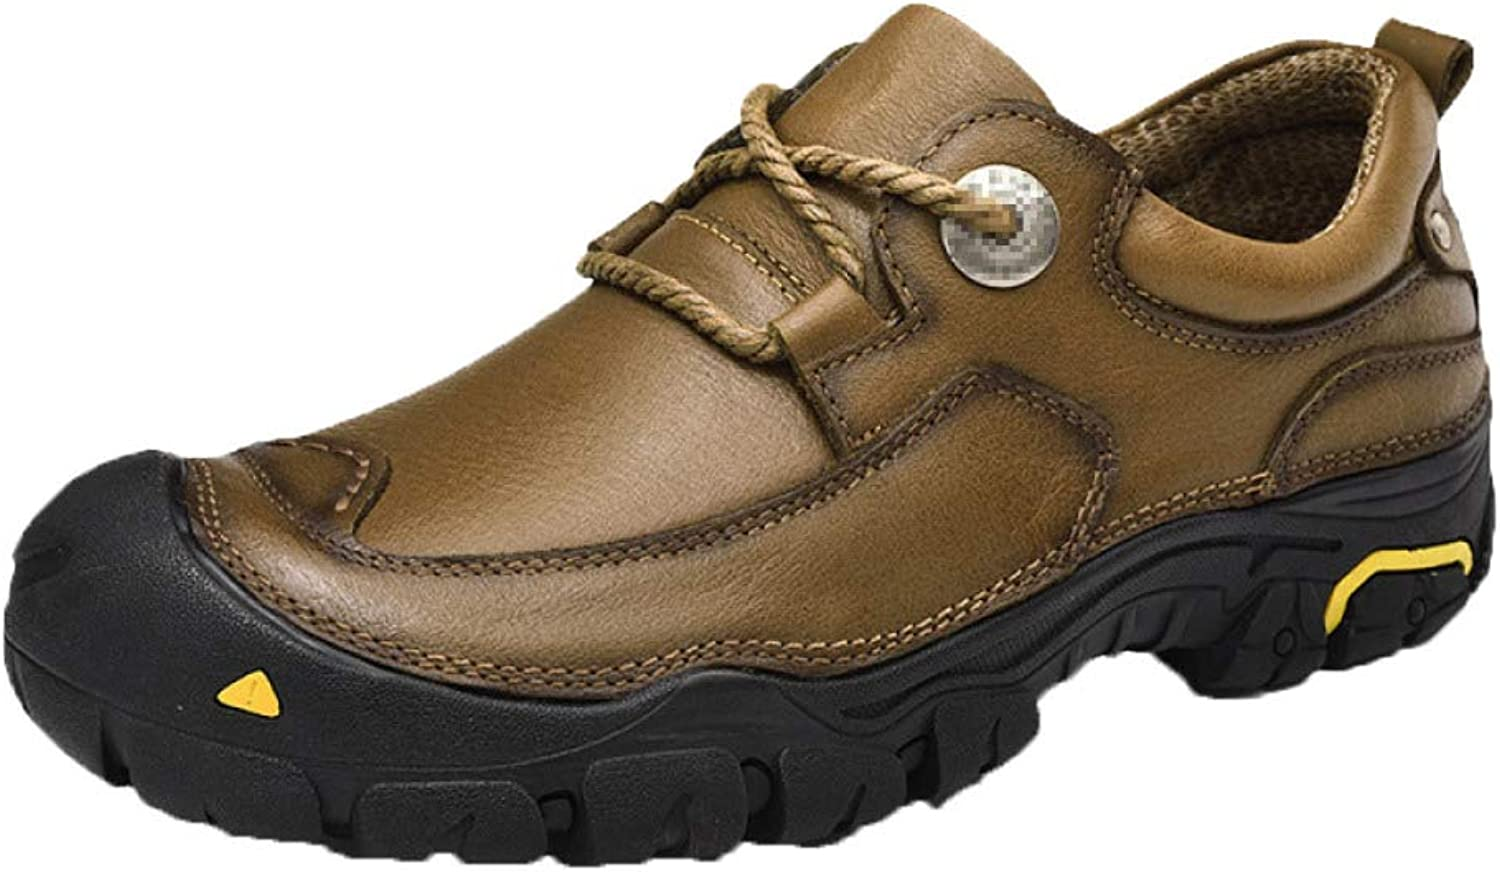 Men's Lightweight Round Toe Leather-Lined Lightweight Formal Business Work Comfort Lace-Up